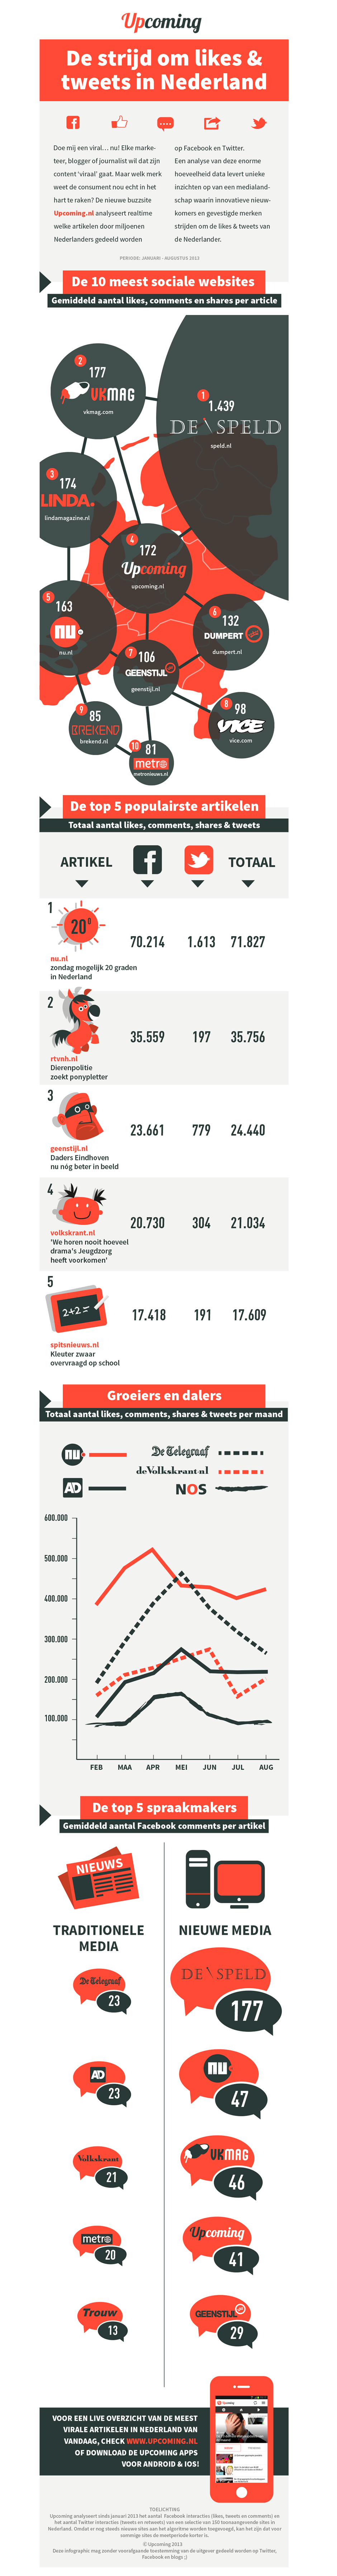 Upcoming.nl infographic grafisch ontwerp: André Snoei